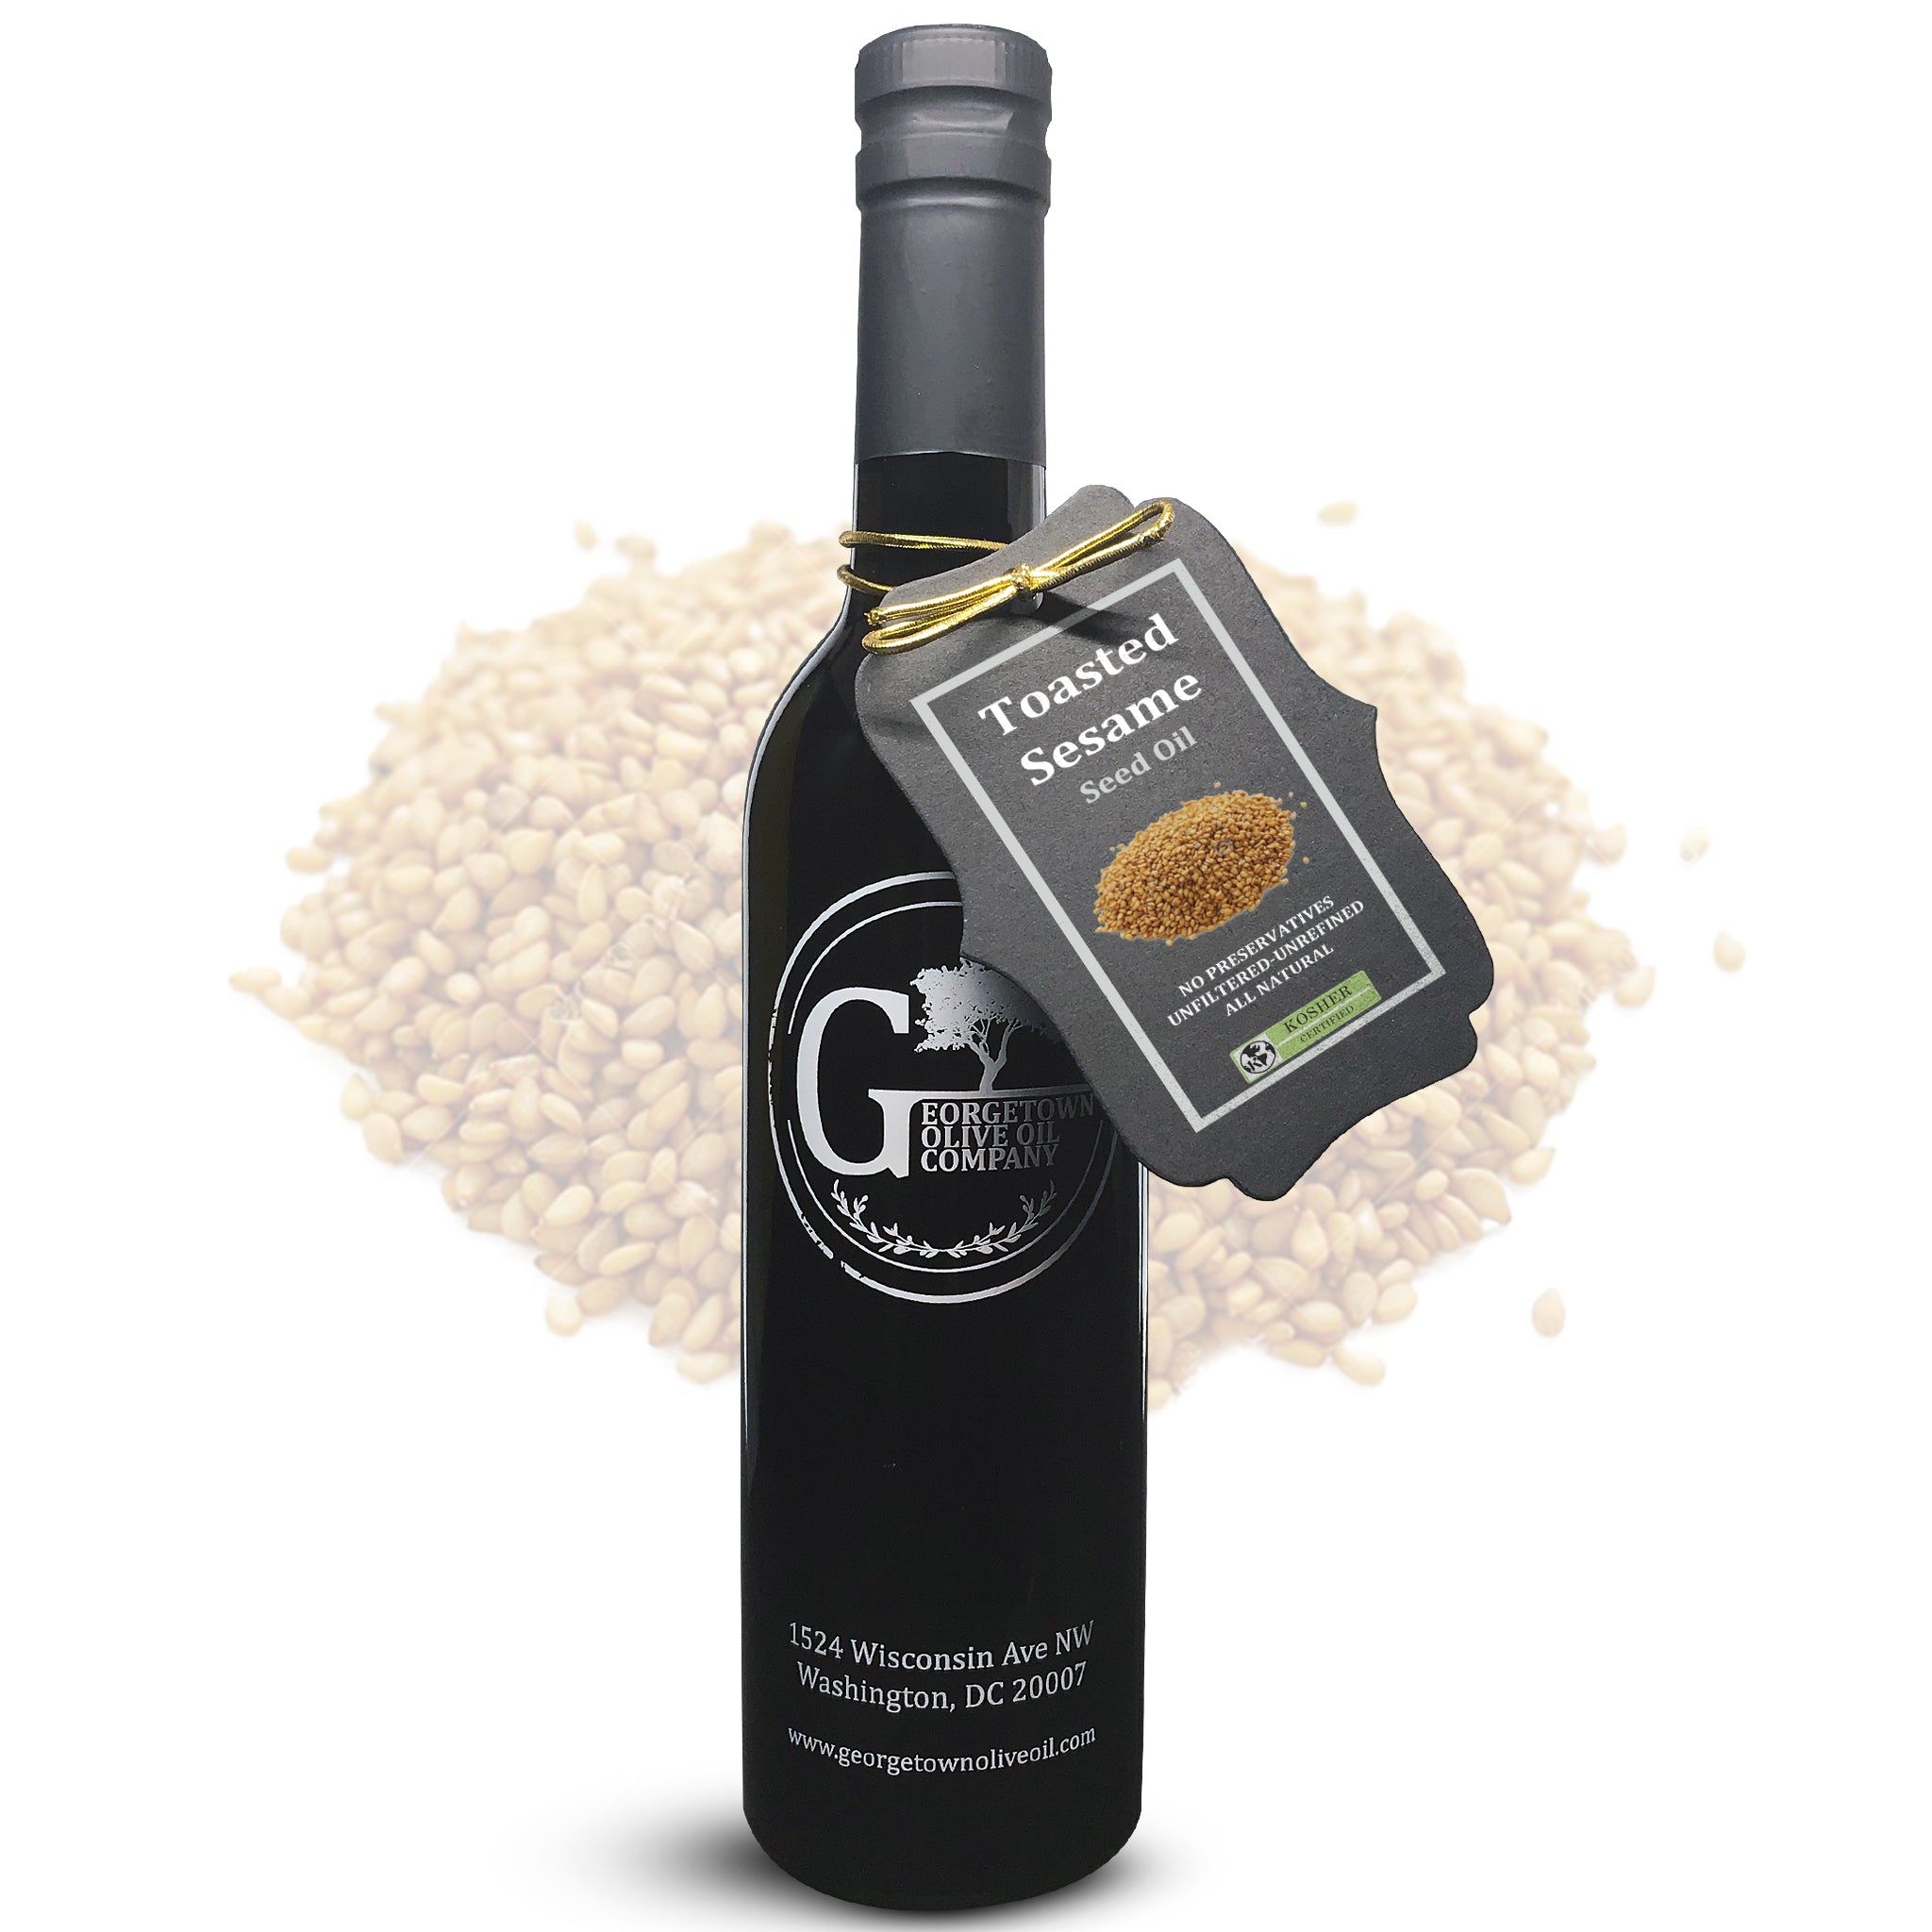 Japanese Toasted Sesame Oil - Georgetown Olive Oil Co.